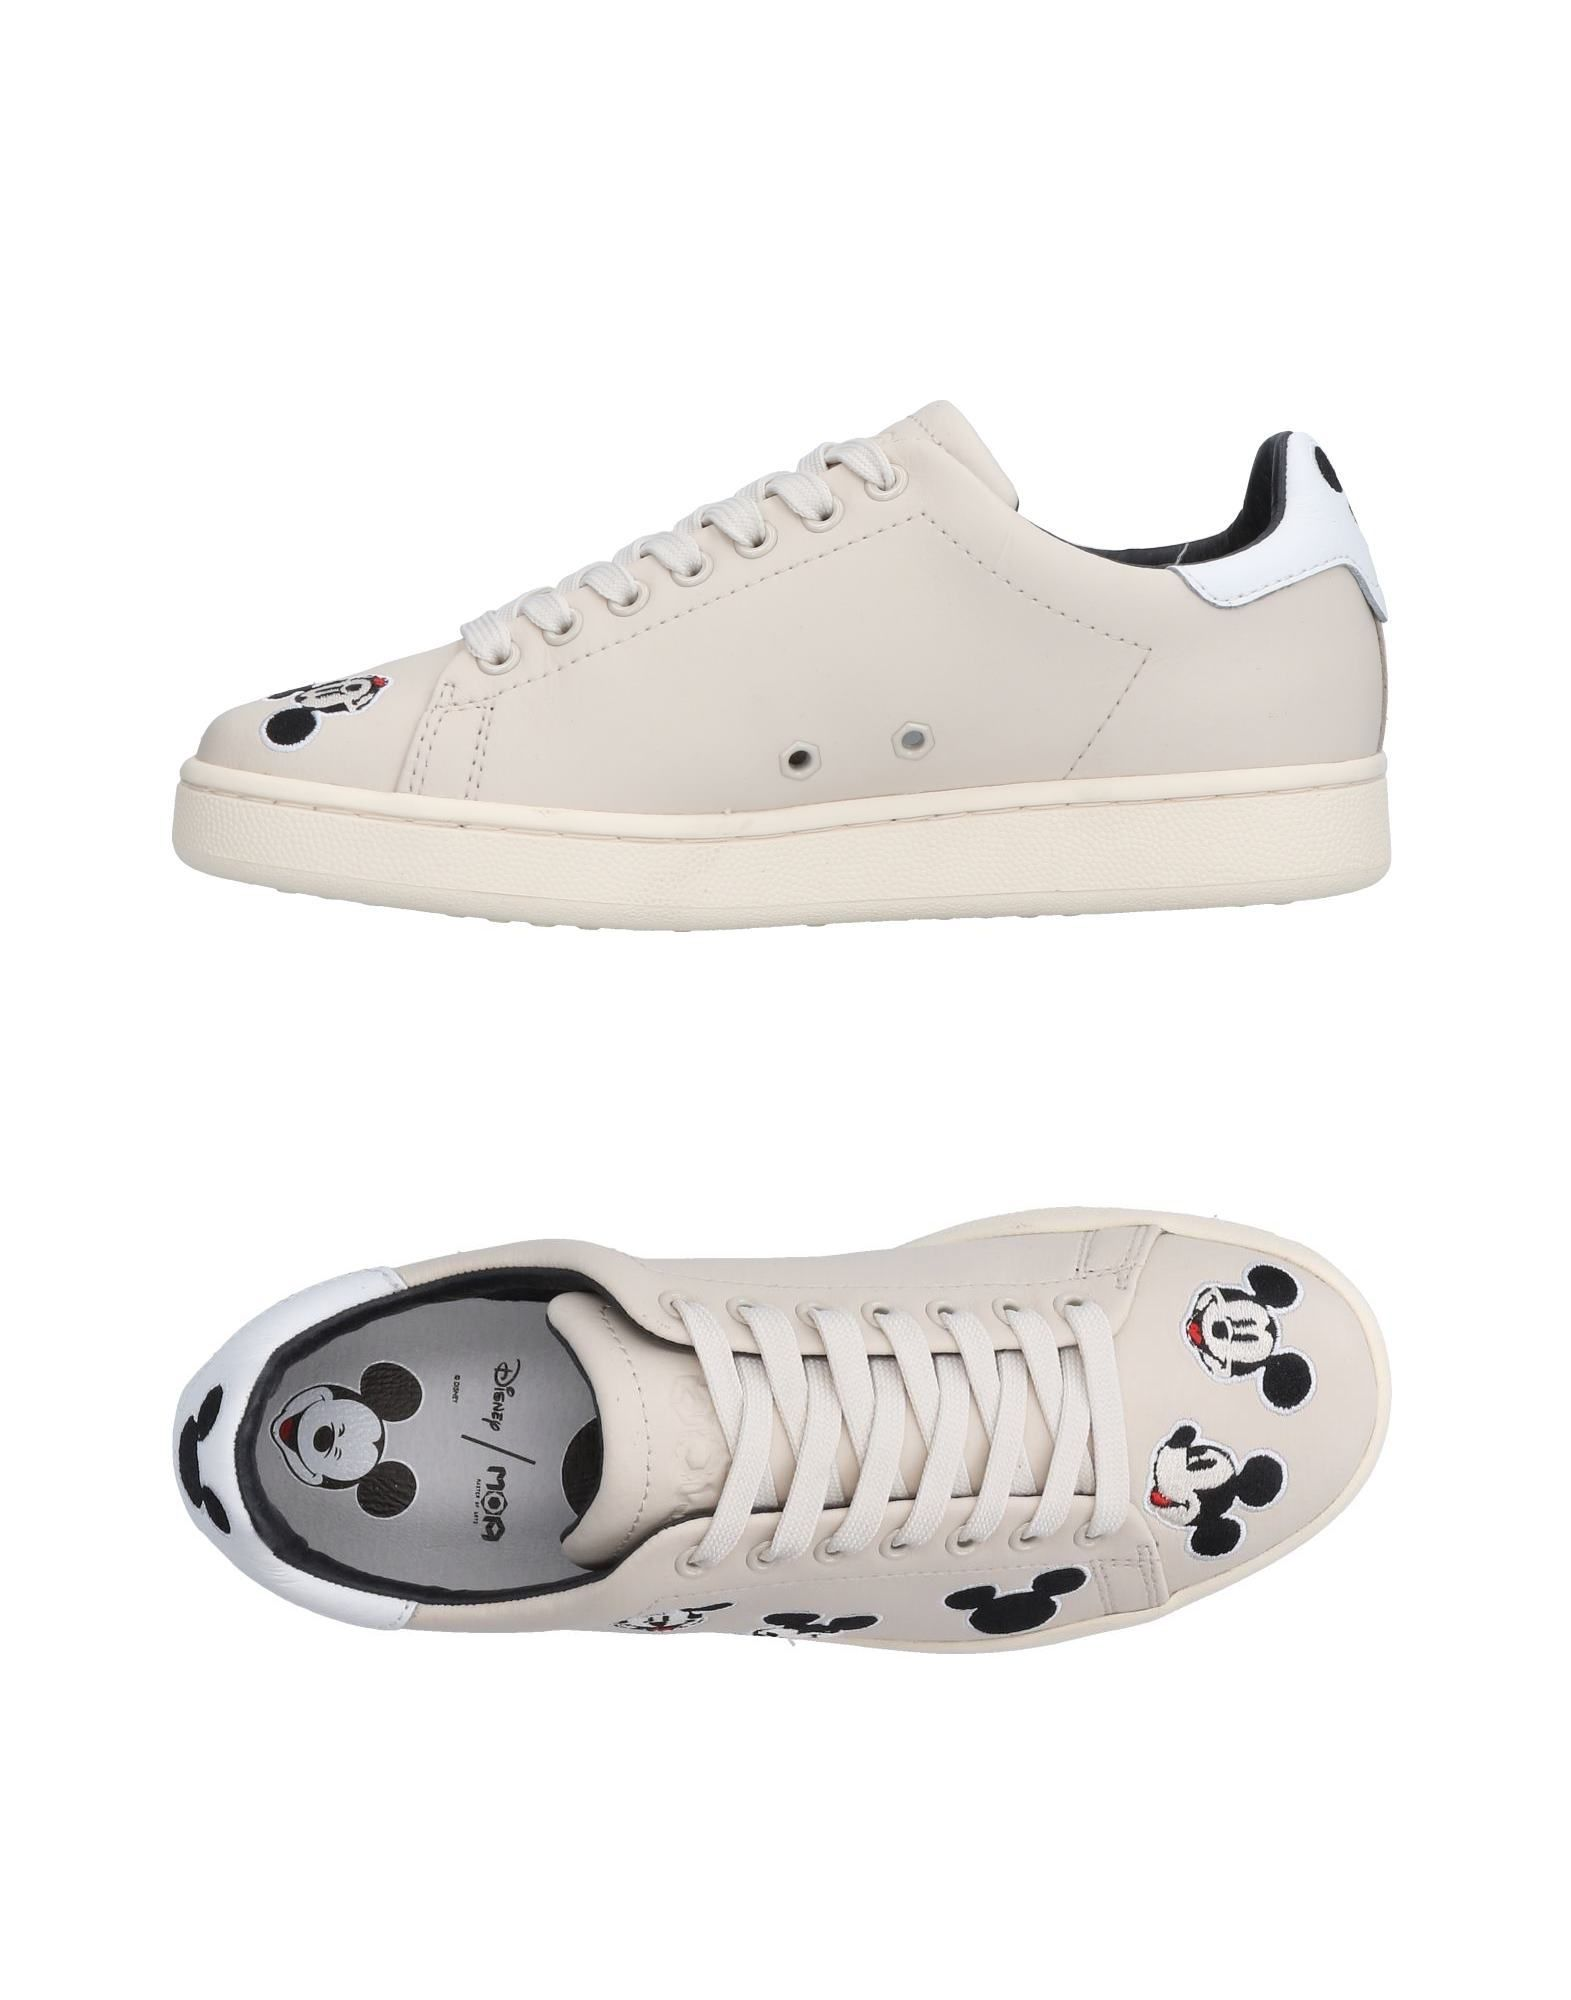 Stilvolle billige Schuhe Moa  Master Of Arts Sneakers Damen  Moa 11509543ND 6a36ab